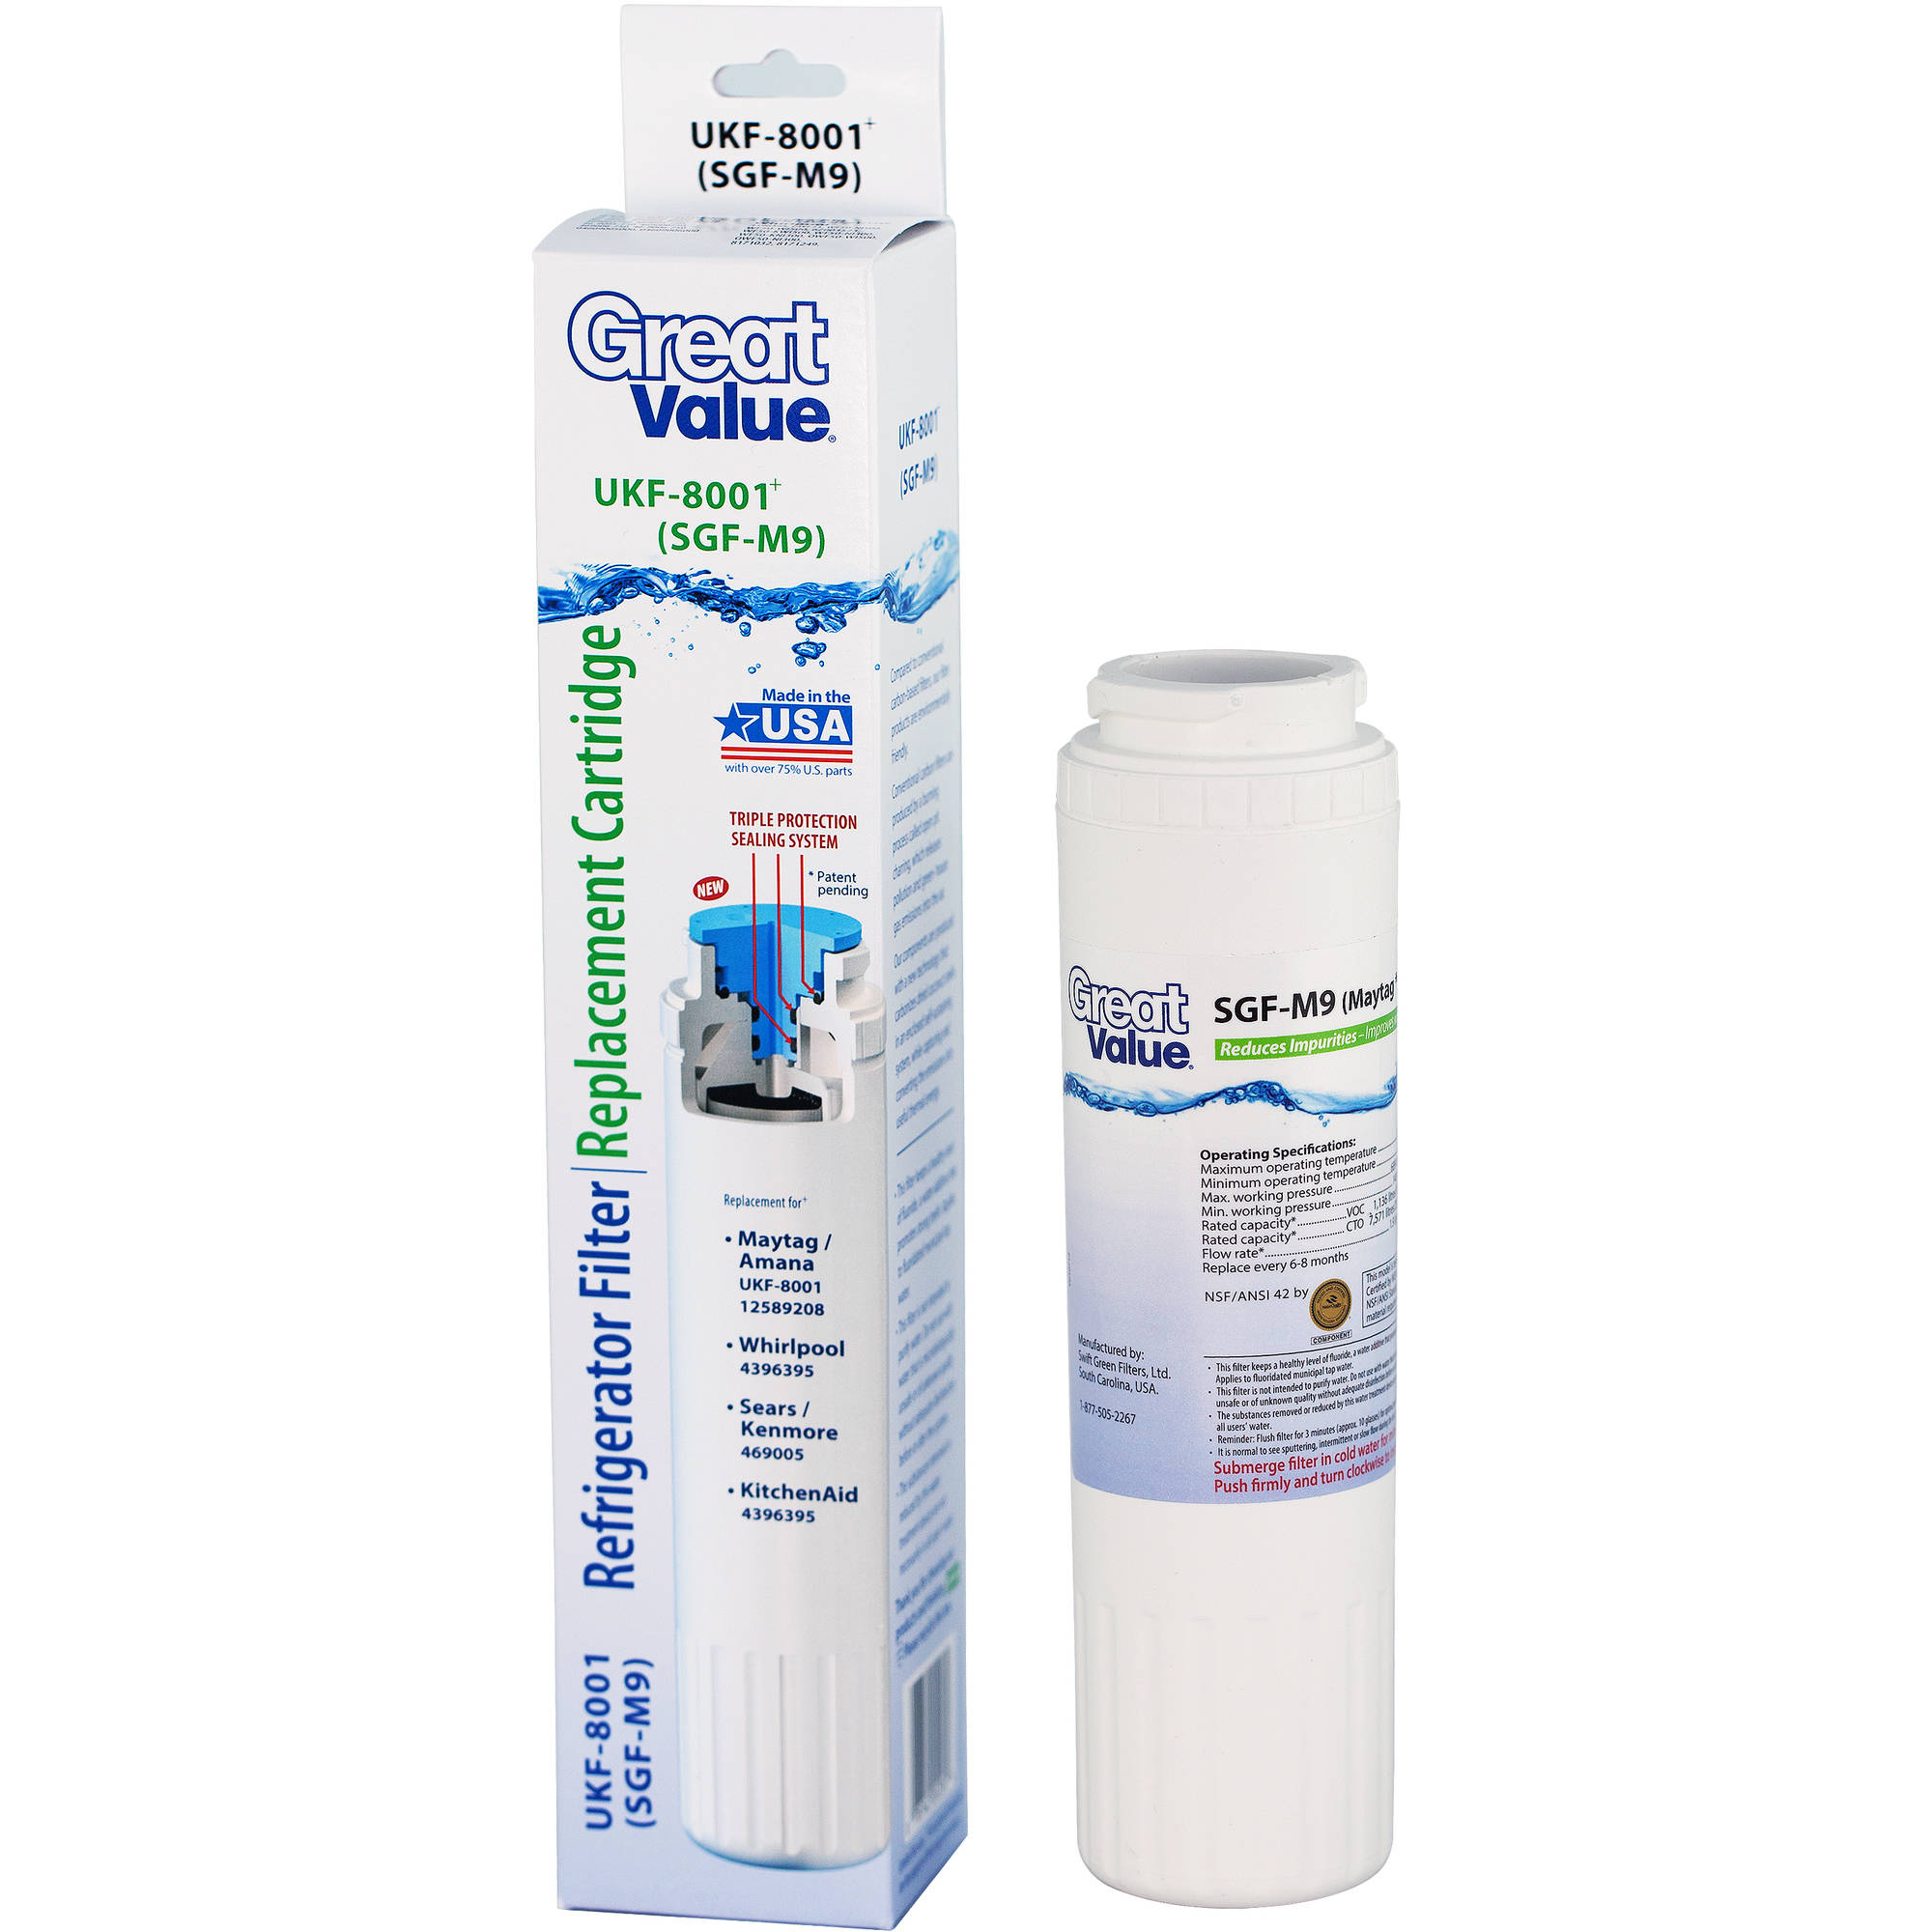 Great Value Refrigerator Filter Replacement Cartridge, UKF-8001 (SGF-M9)